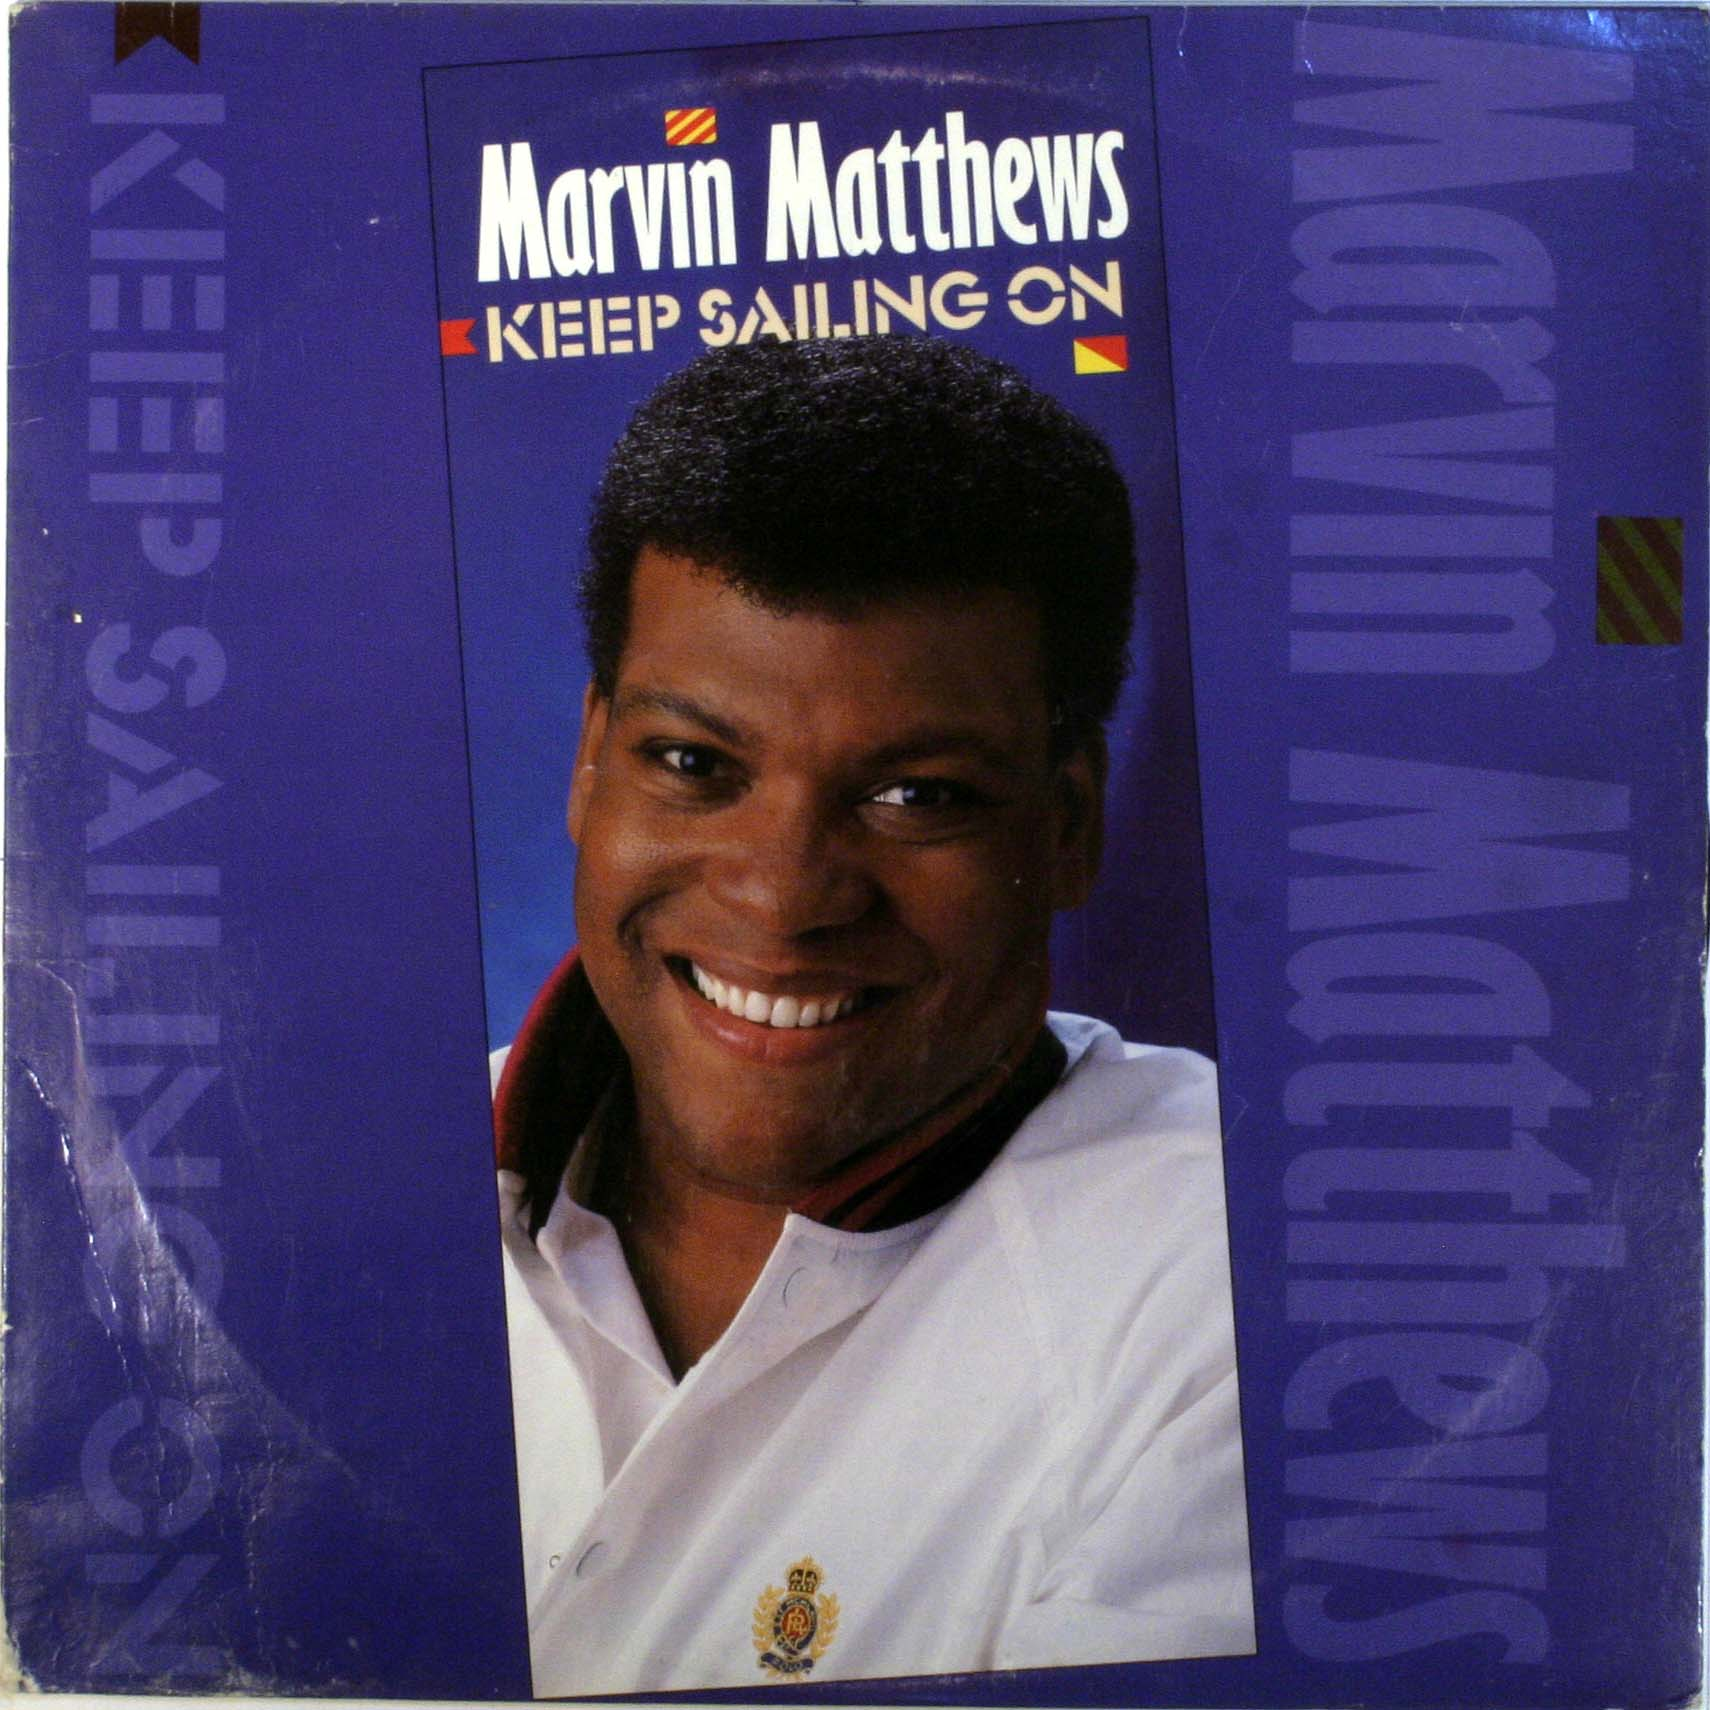 Marvin Matthews - Keep Sailing On